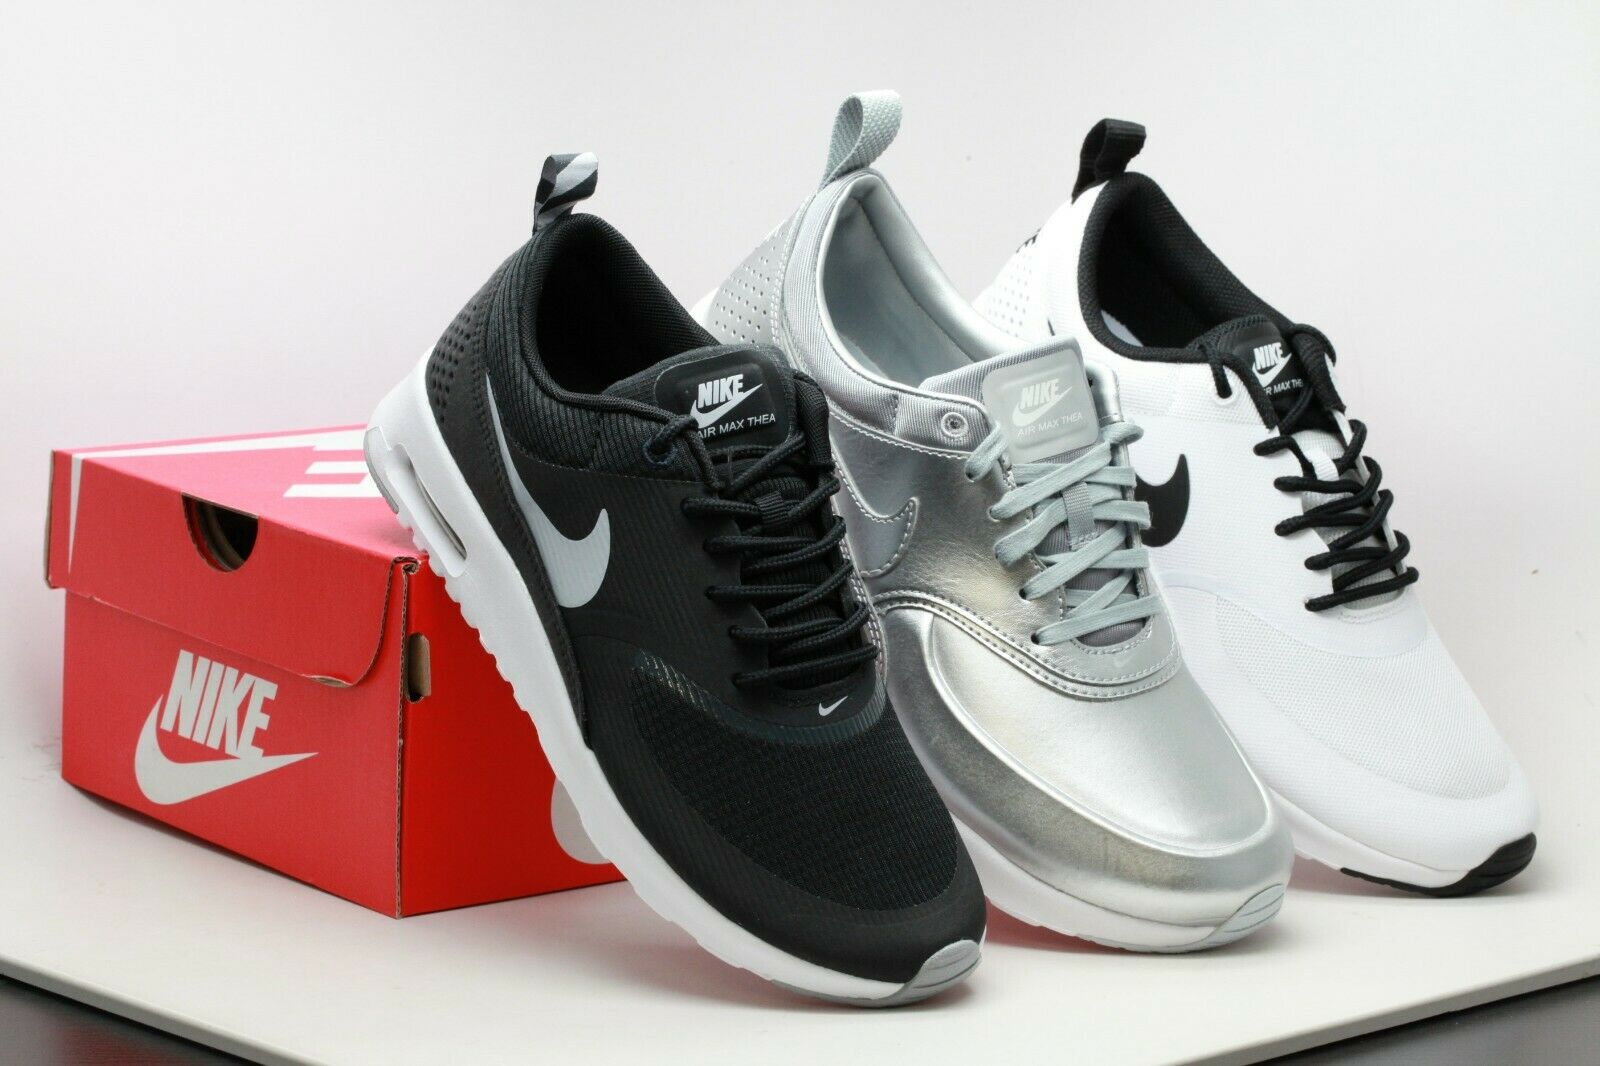 AUTHENTIC Nike Women's Air Max Thea Black Wolf Grey, White Black Metallic Silver